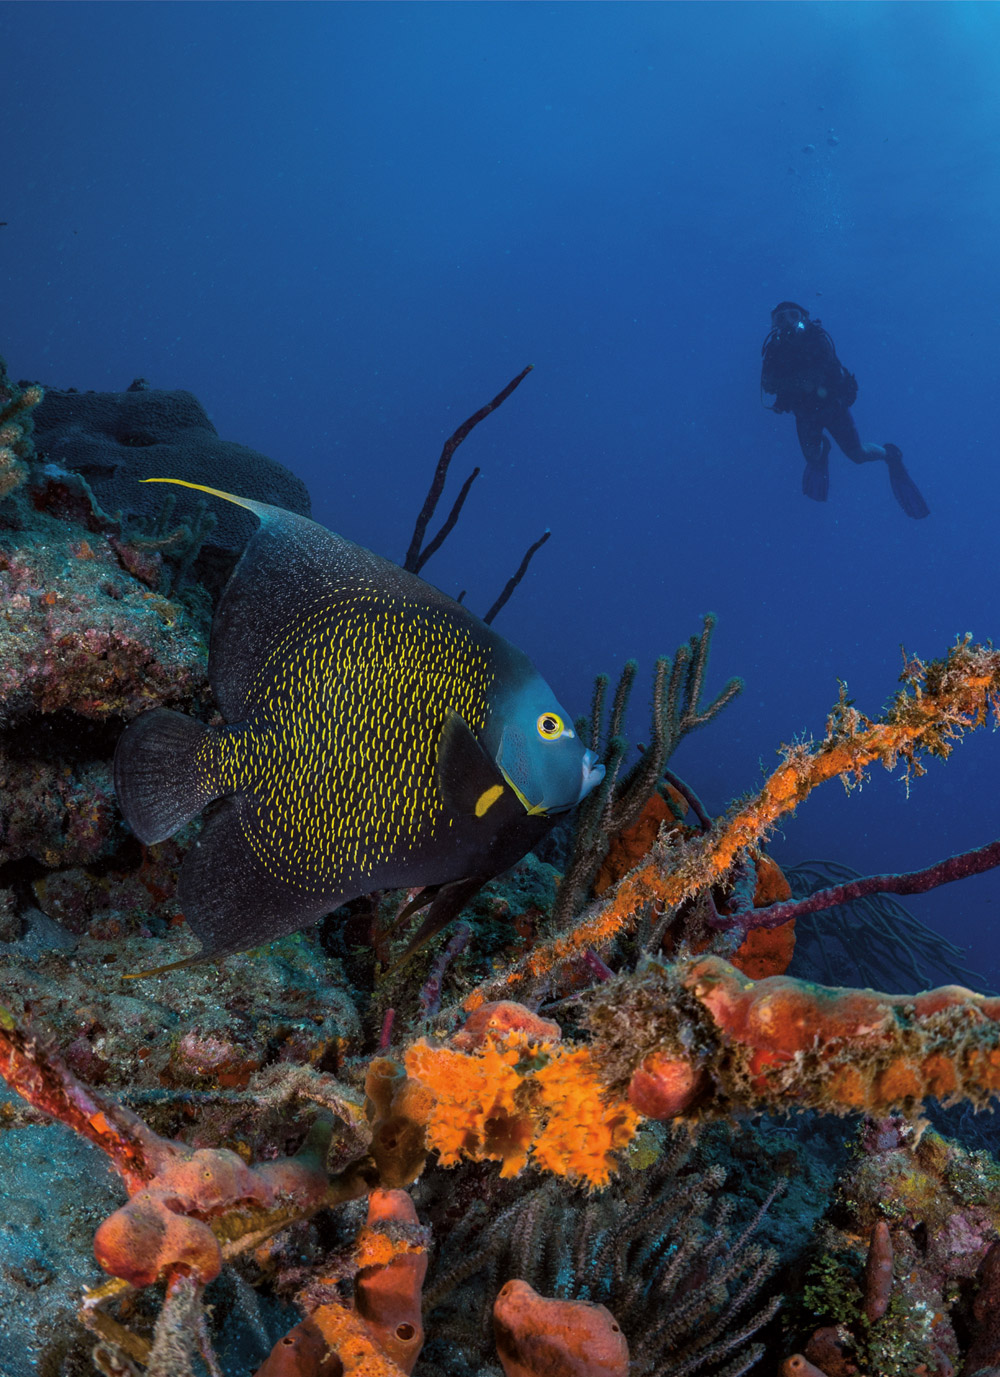 A diver spots a French angelfish at Japanese Gardens, Speyside. Photo by Kadu Pinheiro